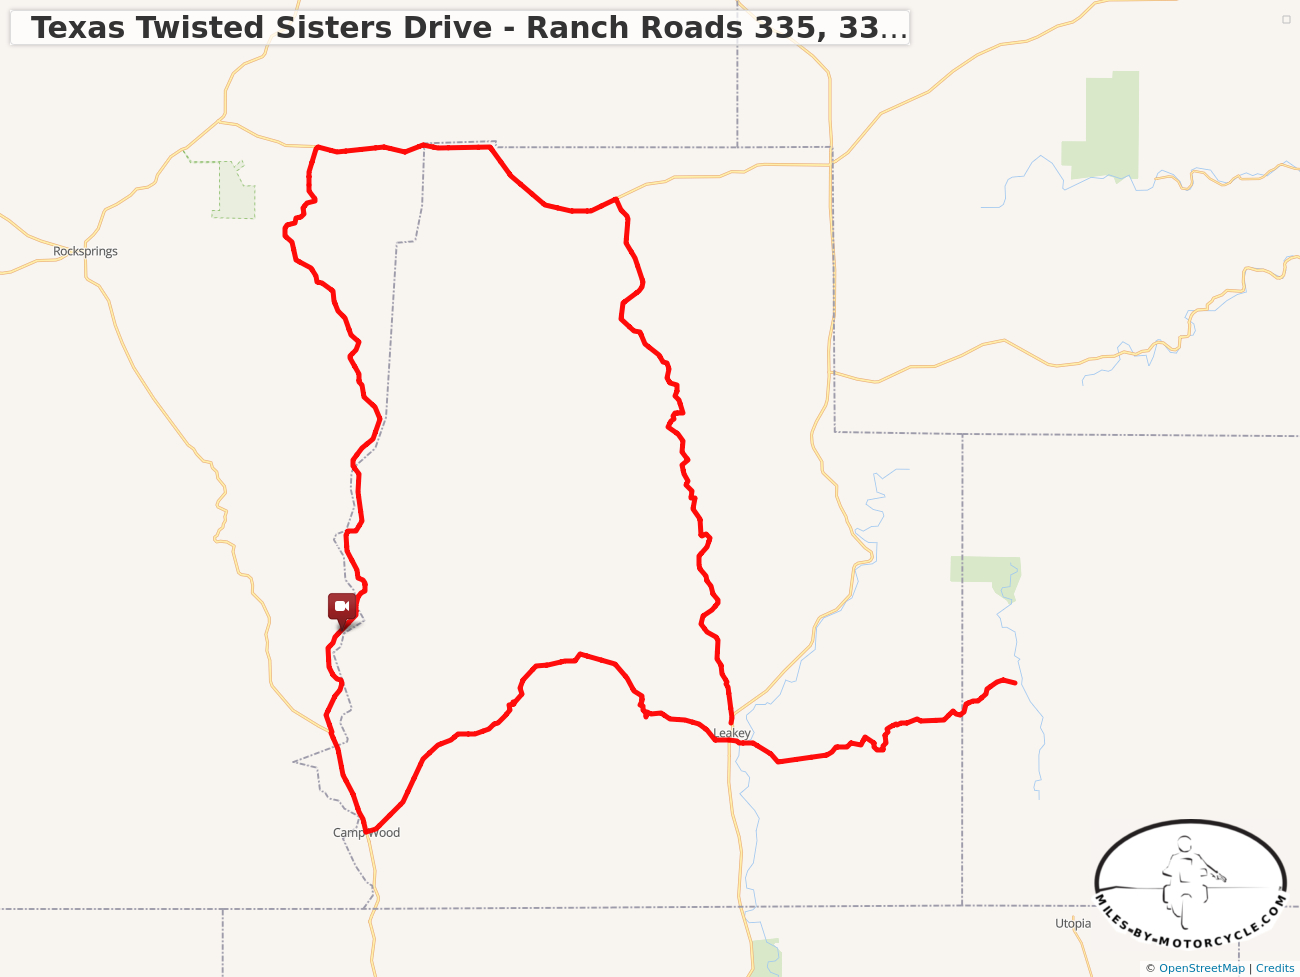 Texas Twisted Sisters Drive - Ranch Roads 335, 337, 336 - Utopia Texas Map